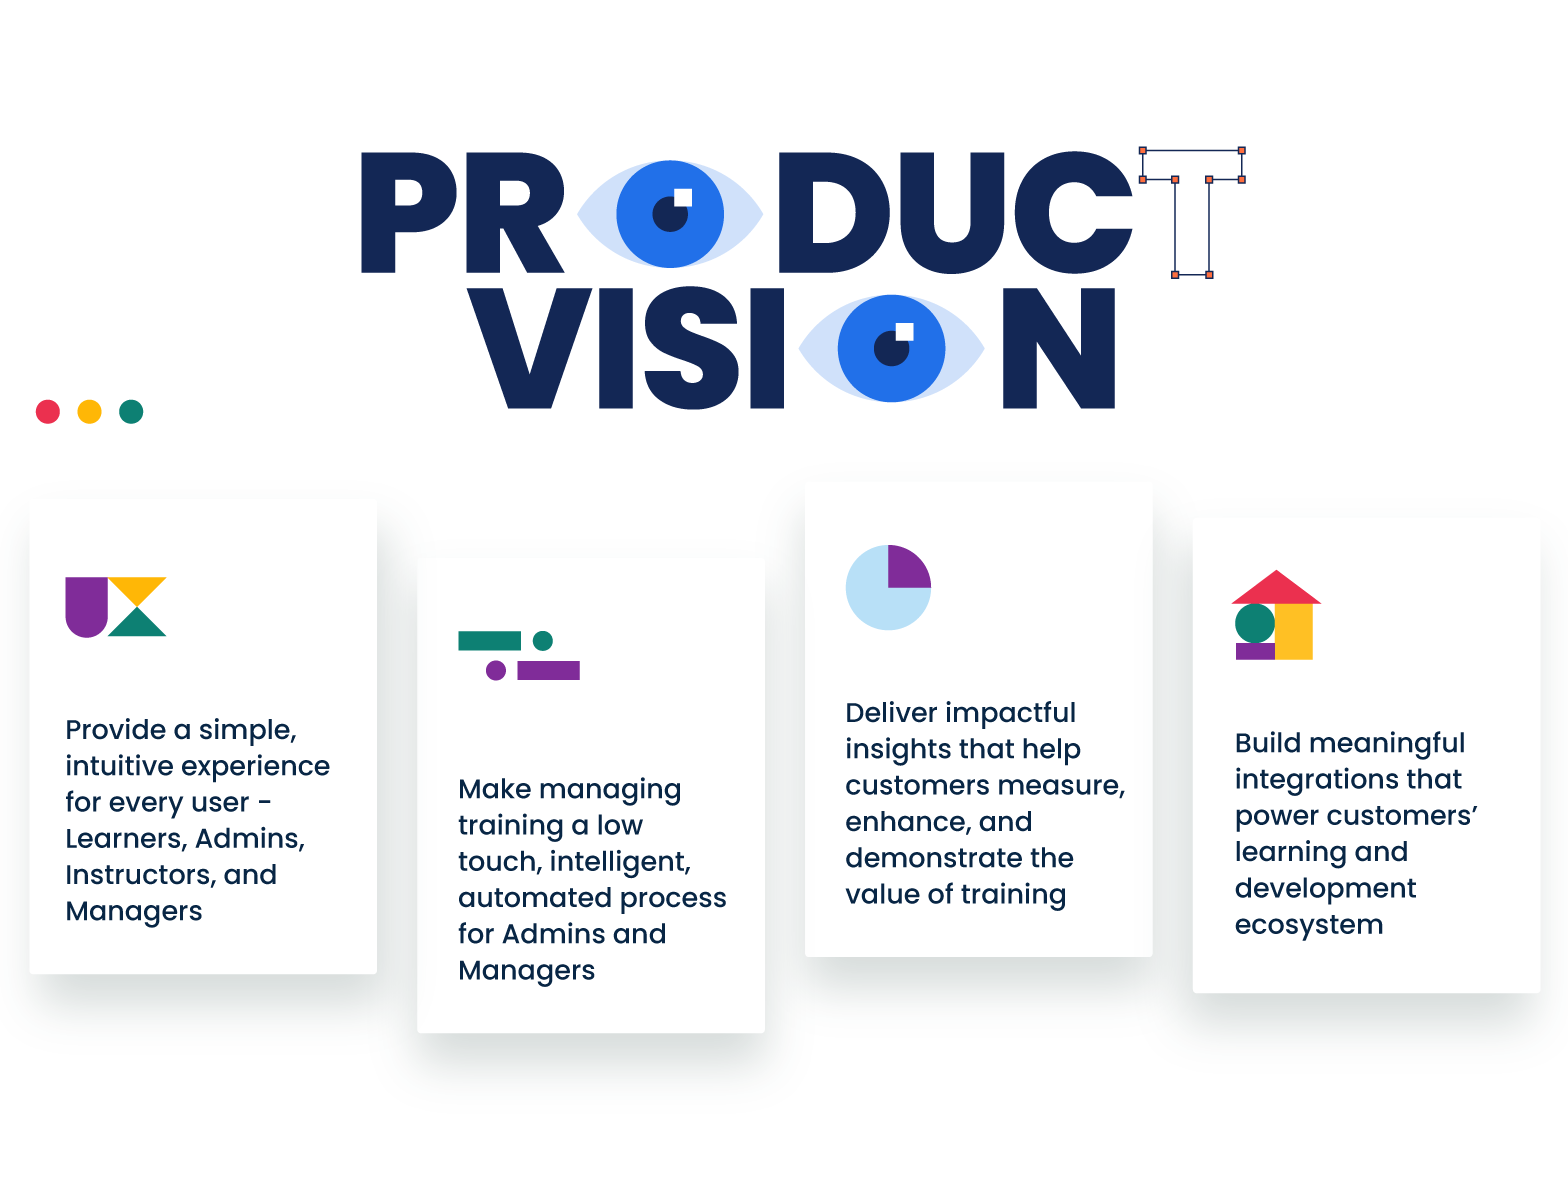 Blog: LearnUpon Product Vision 2021